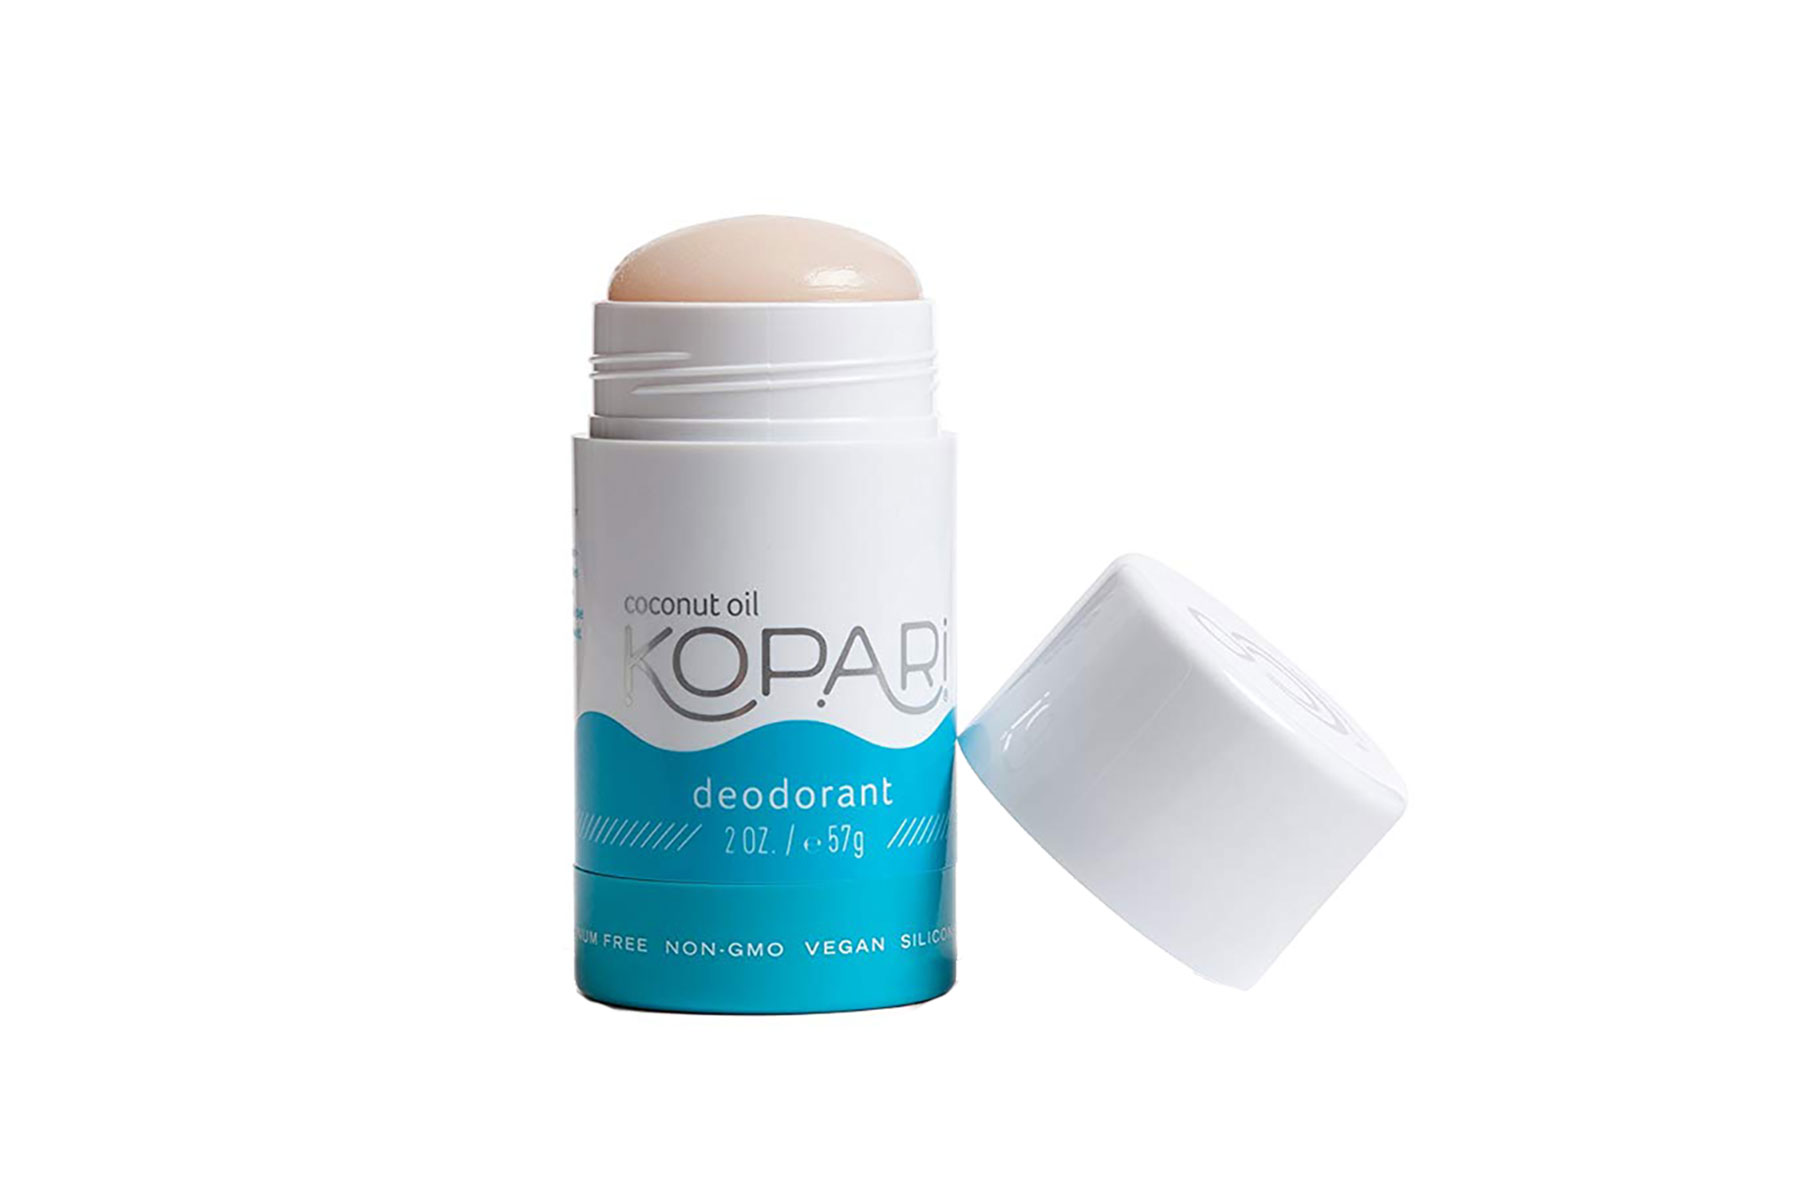 Kopari All Natural Coconut Deodorant - Embed